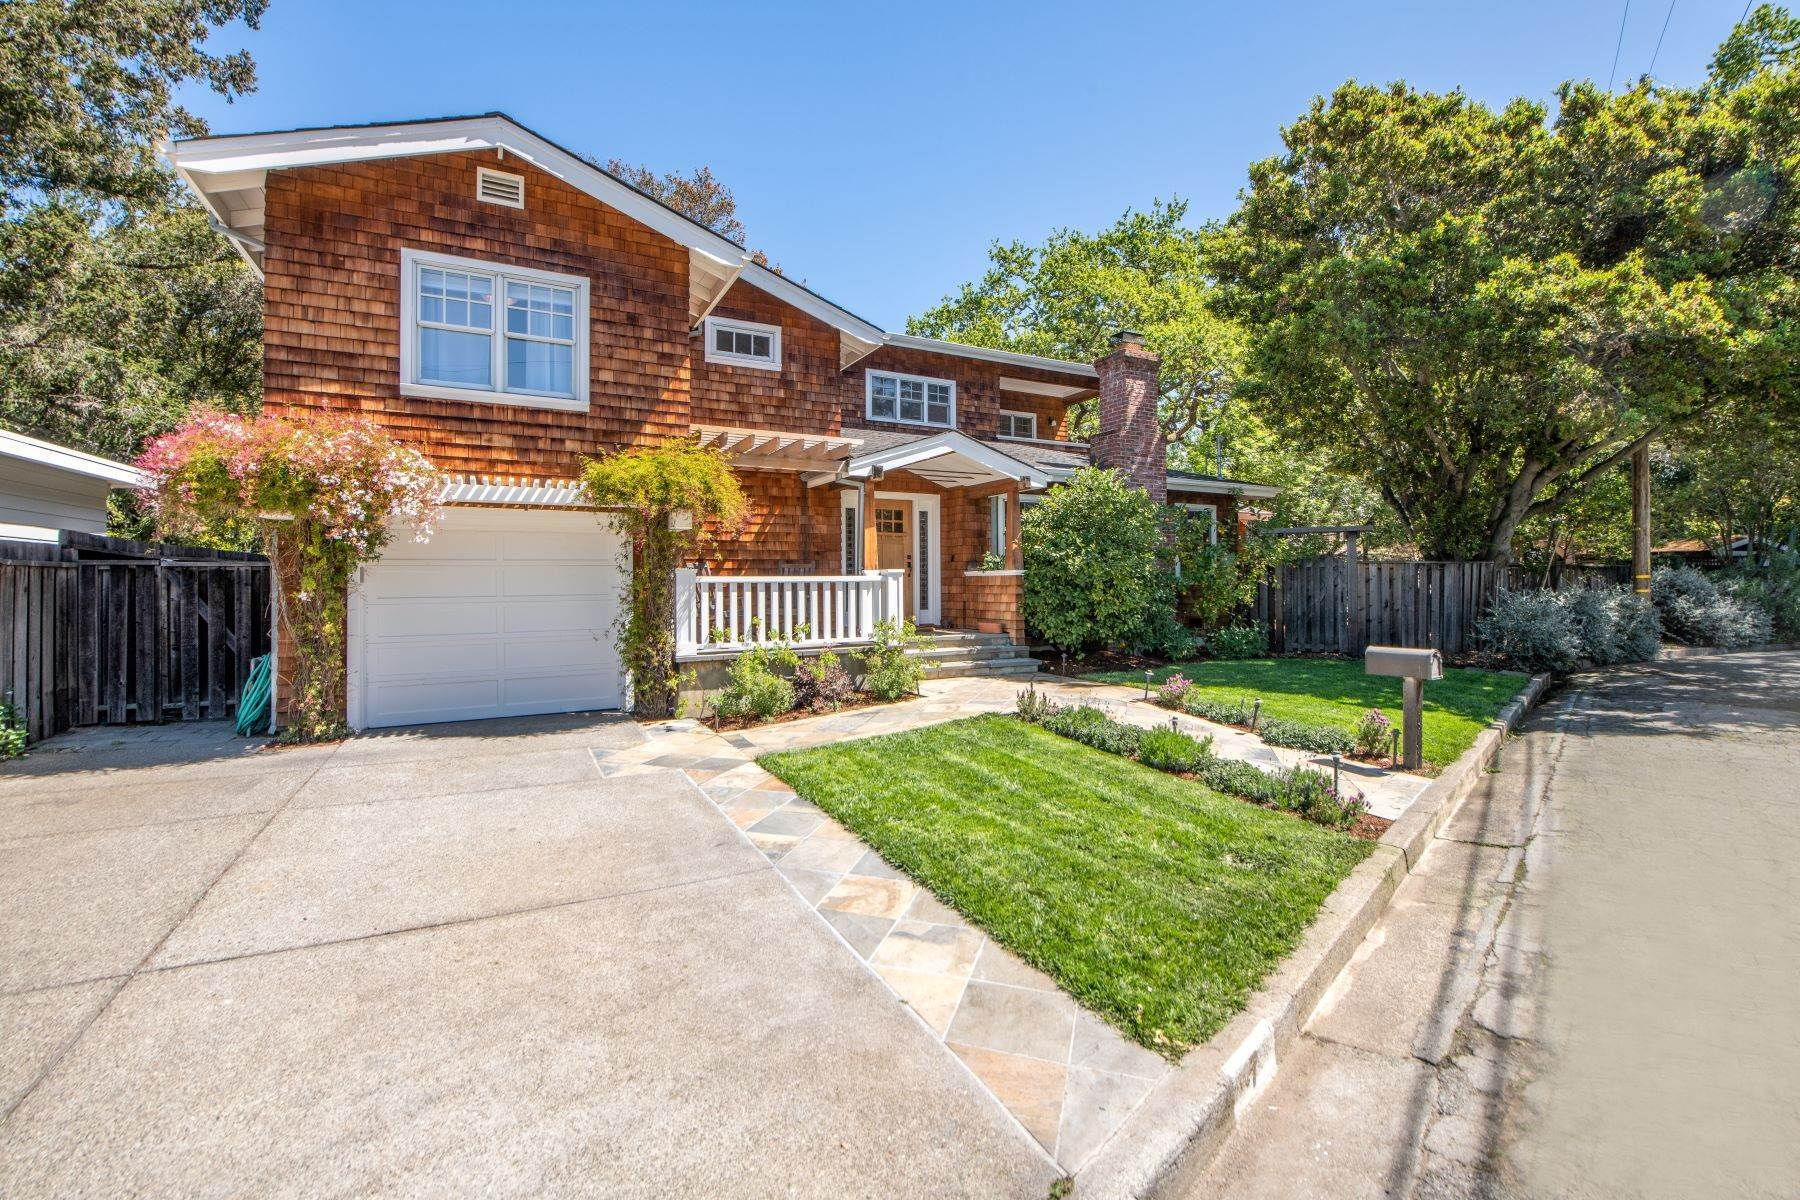 Single Family Homes for Sale at Picture Perfect Craftsman in the Flats of San Anselmo 7 Beverley Way San Anselmo, California 94960 United States